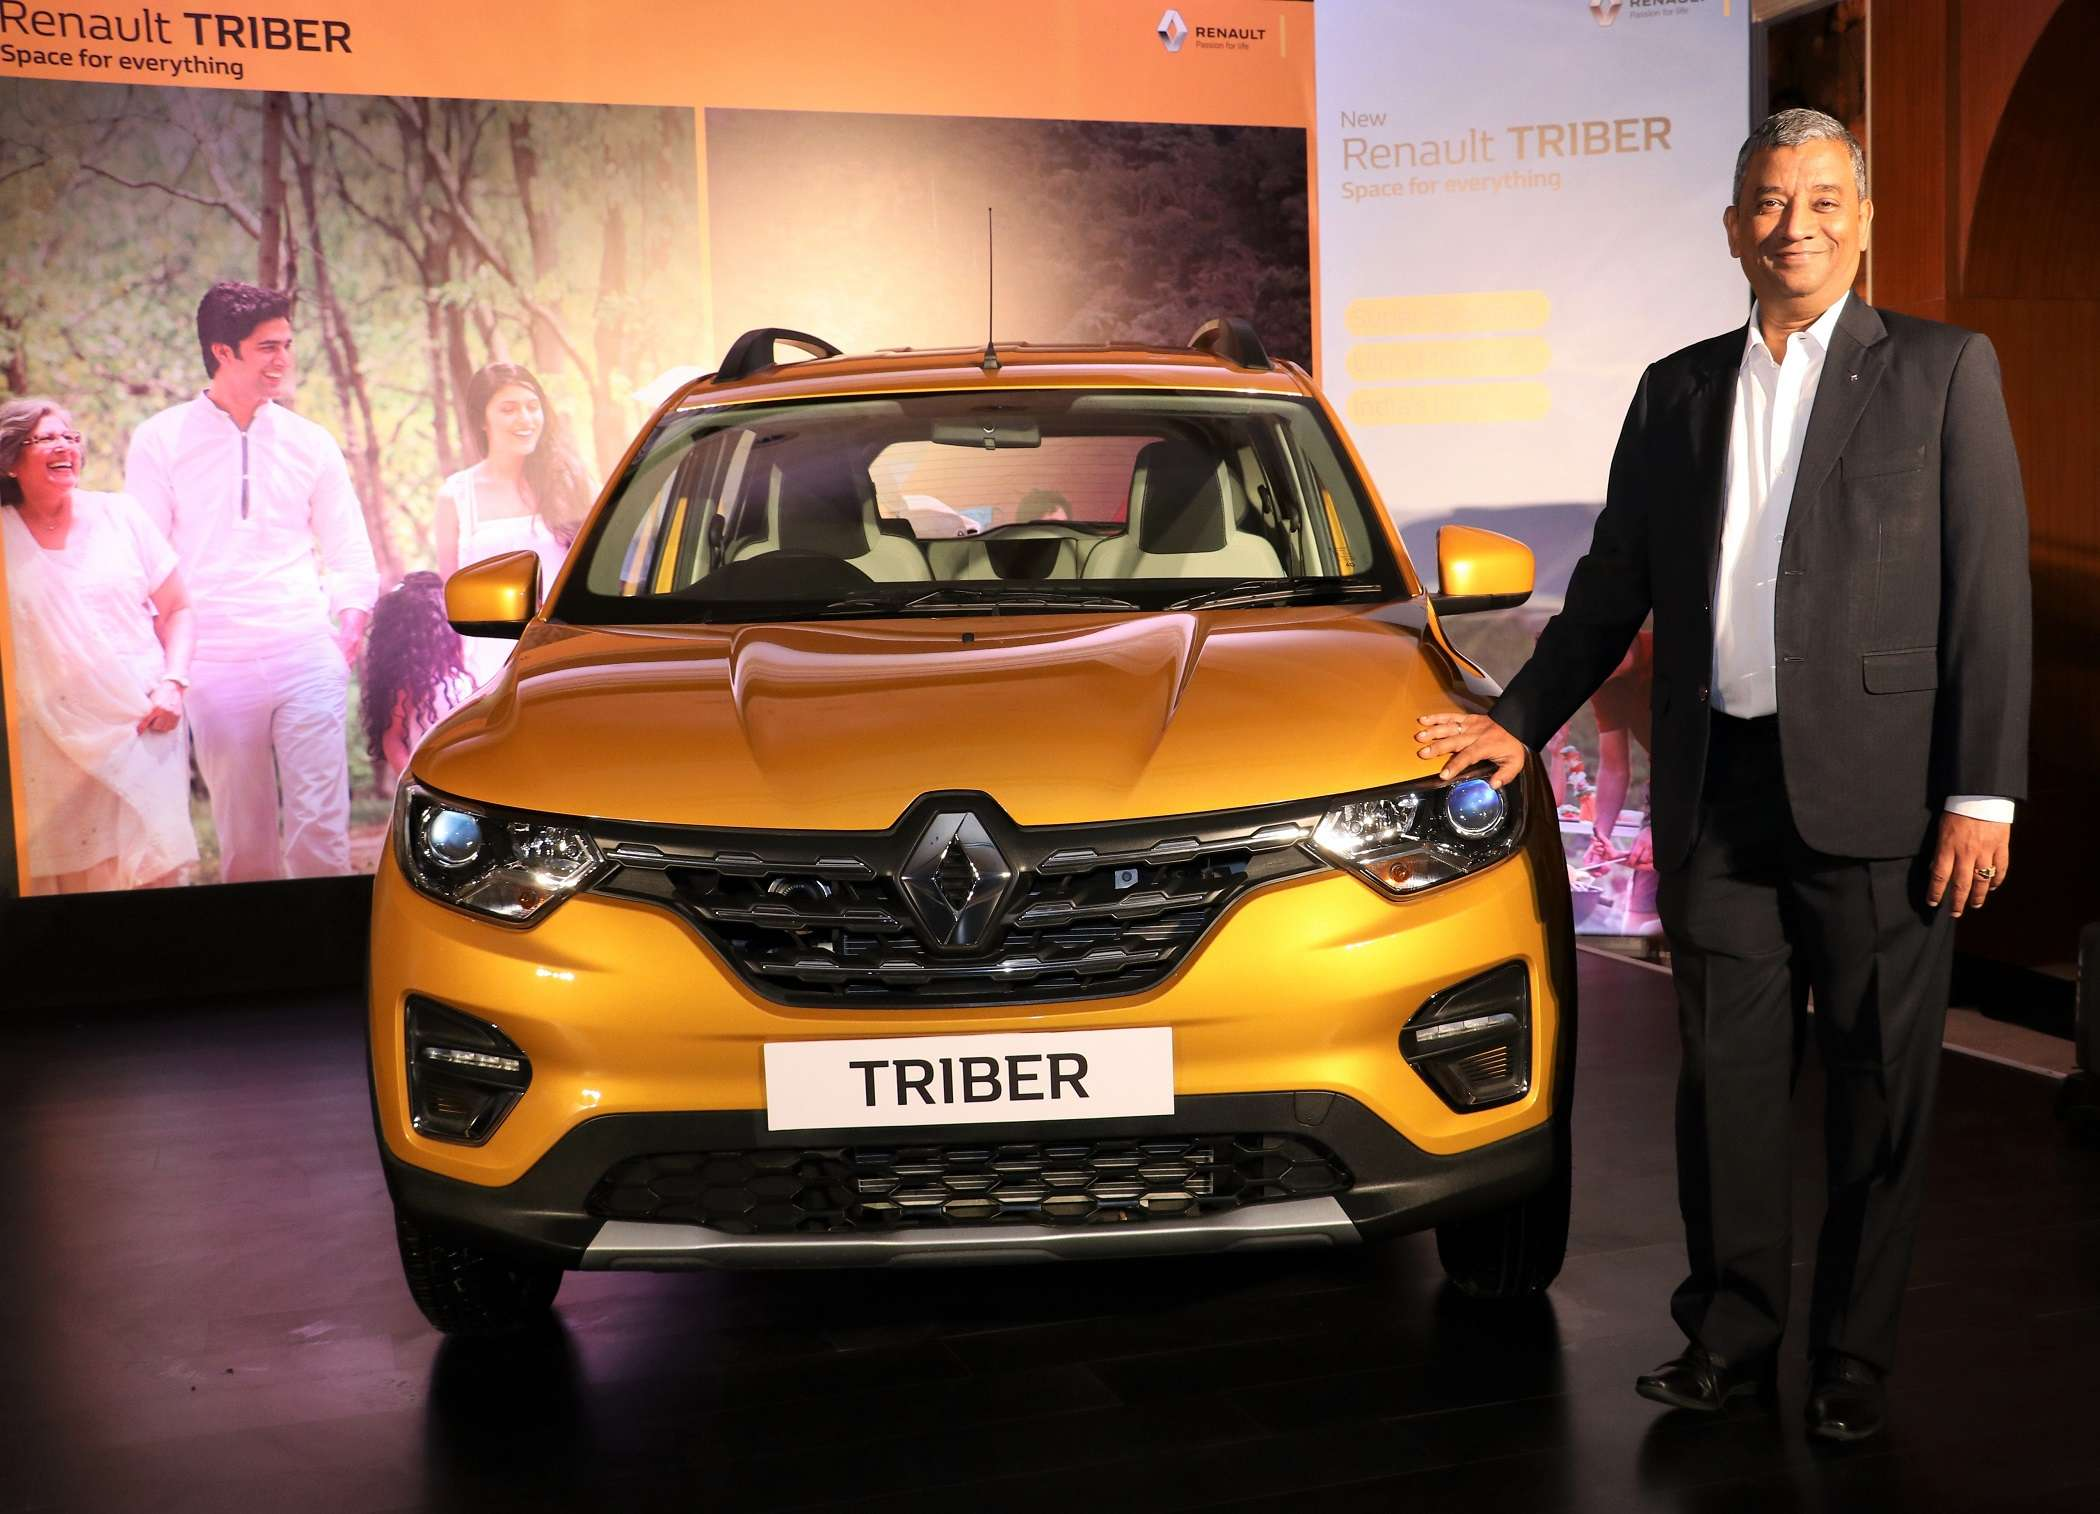 Renault launches Triber priced up to Rs 6.49 lakh